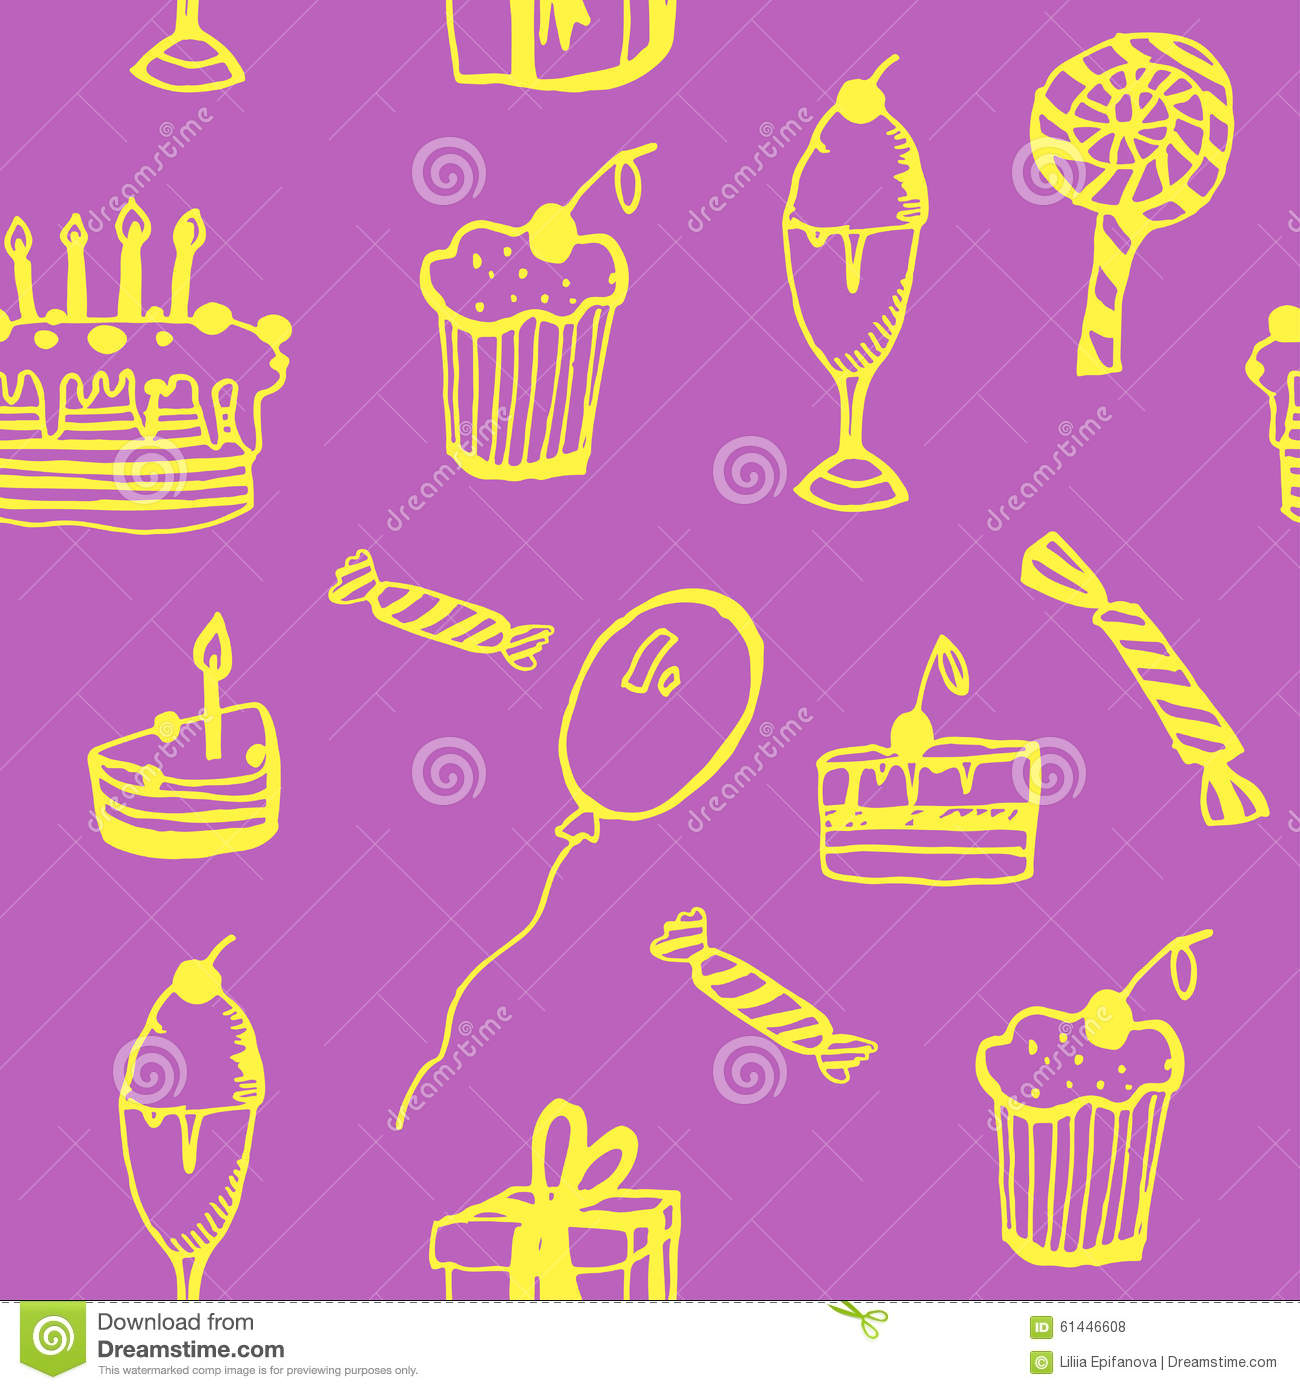 Background Seamless Pattern Of Birthday With Cake Balloons Gifts And Candy Illustration